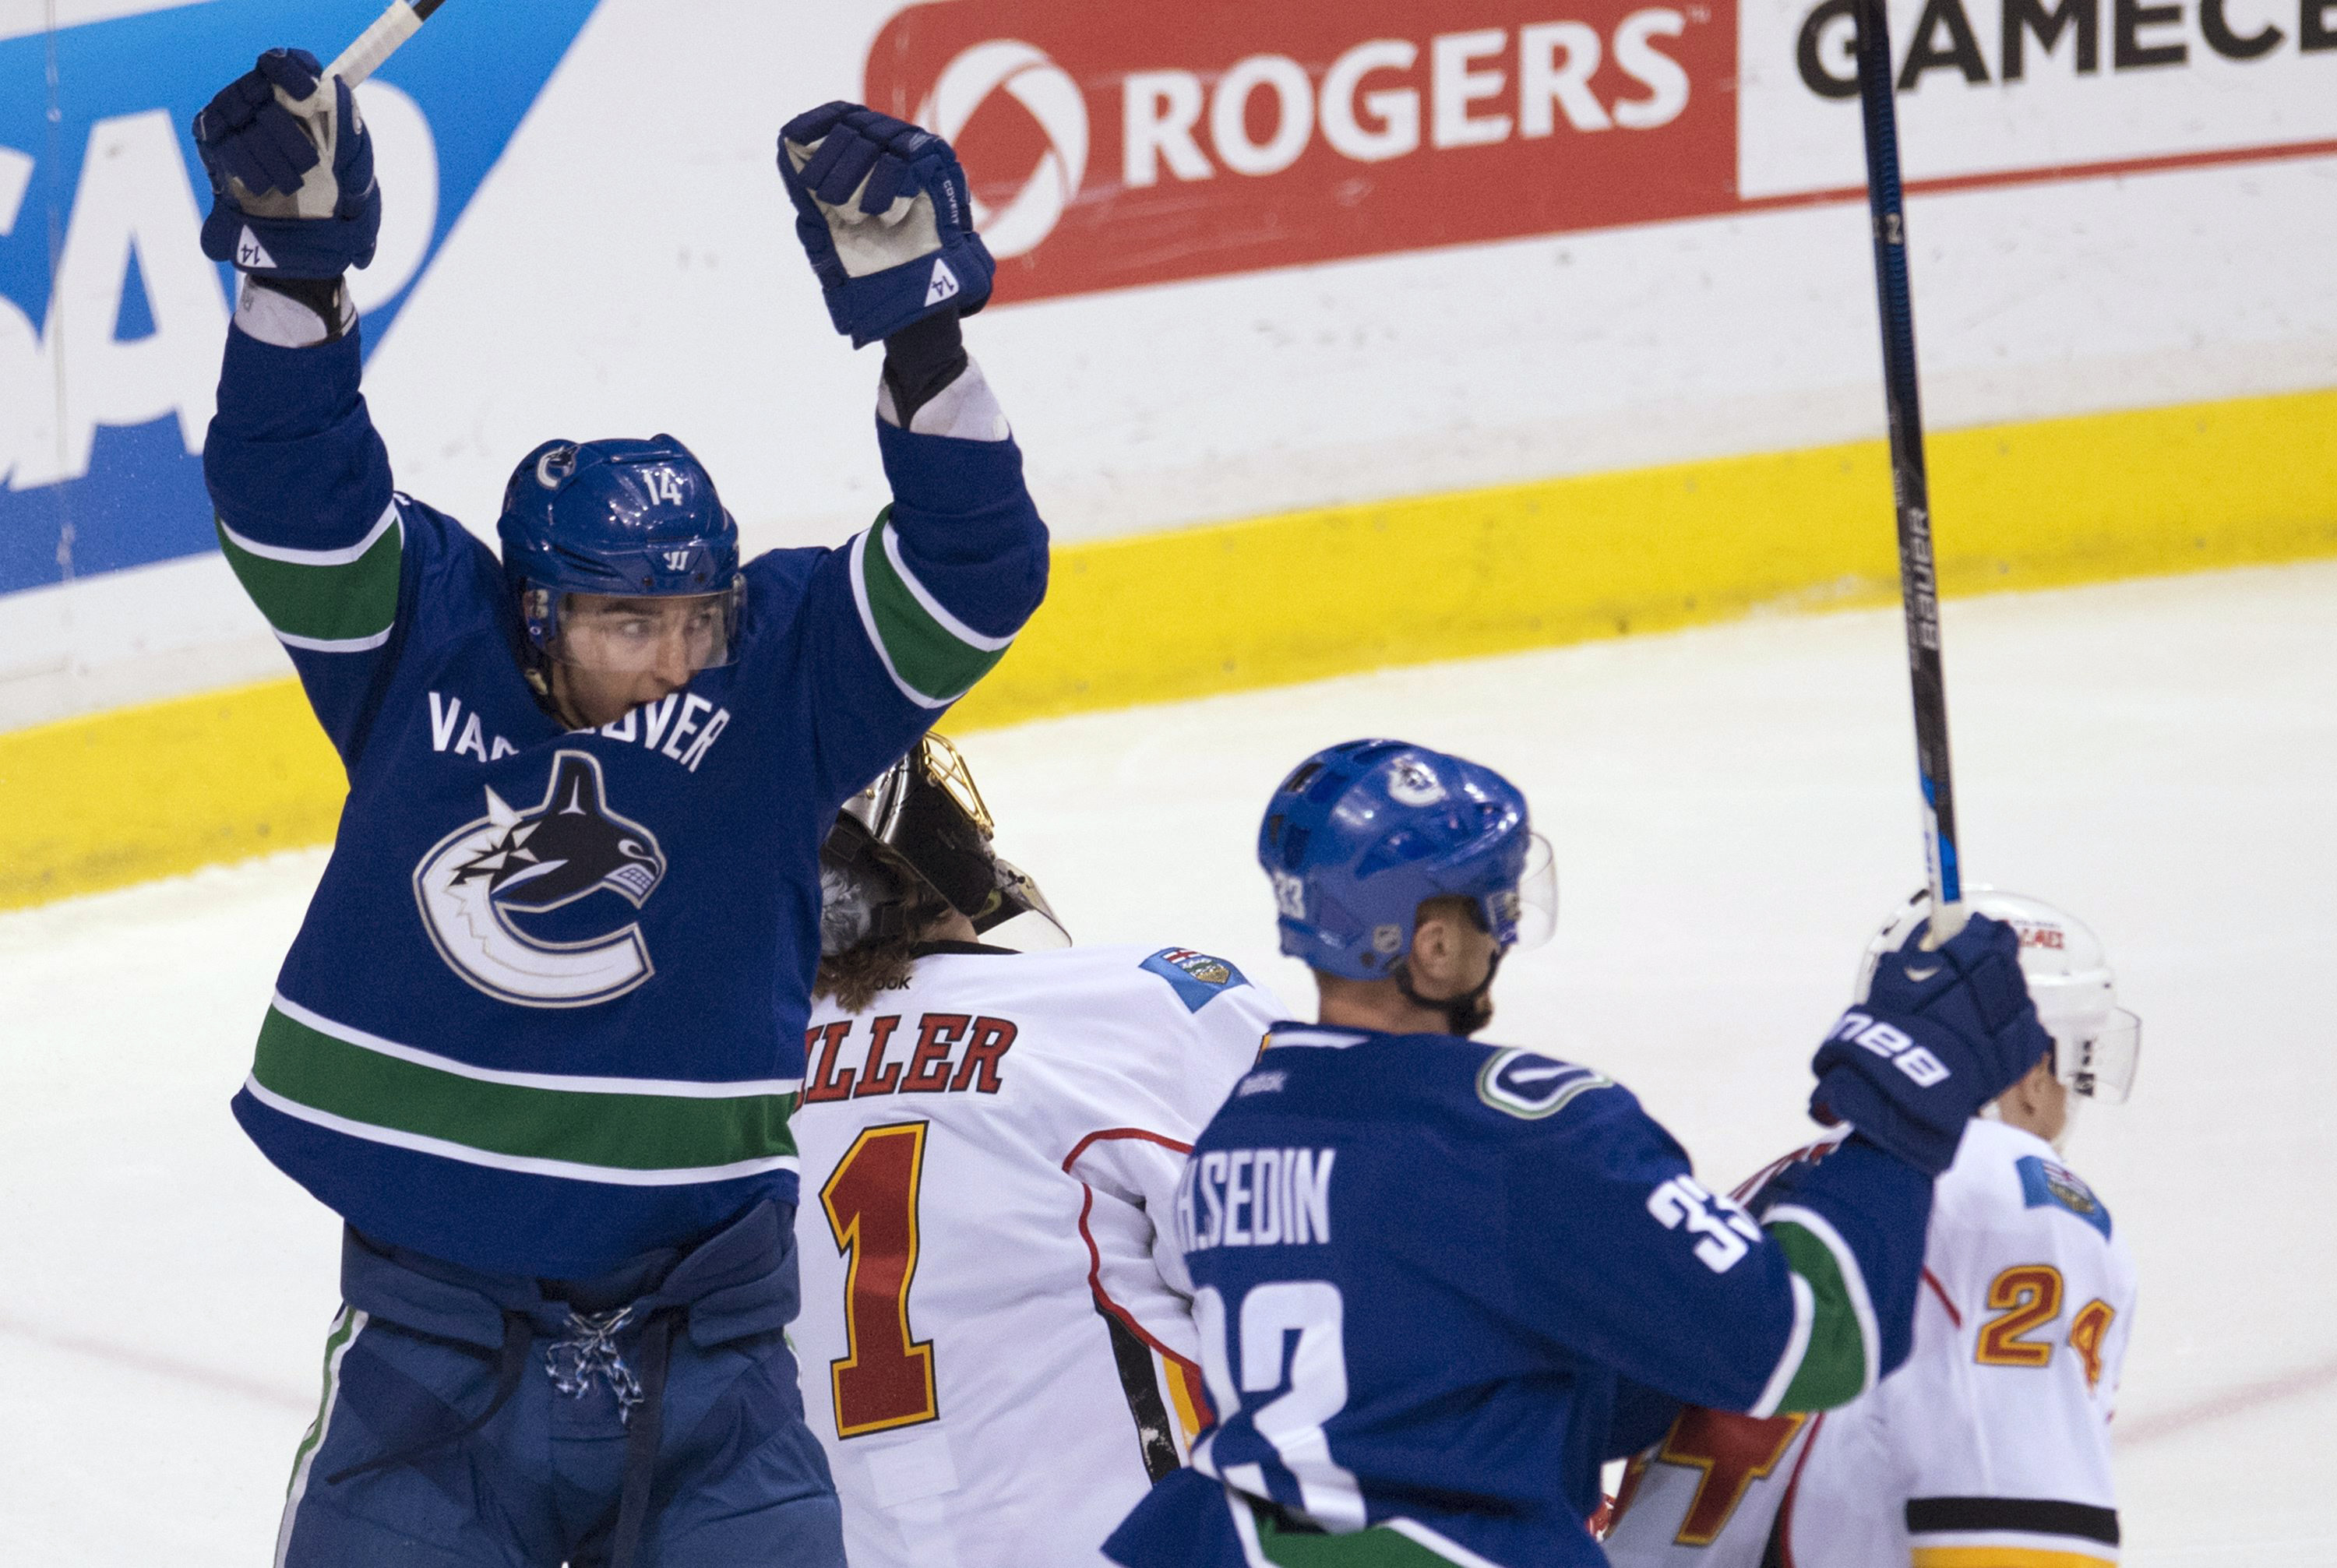 Vancouver Canucks left wing Alex Burrows (14) and Henrik Sedin (33) celebrate Daniel Sedin's goal against the Calgary Flames during the first period of Game 2 of an NHL hockey first-round playoff series, Friday, April 17, 2015, in Vancouver, British Colum